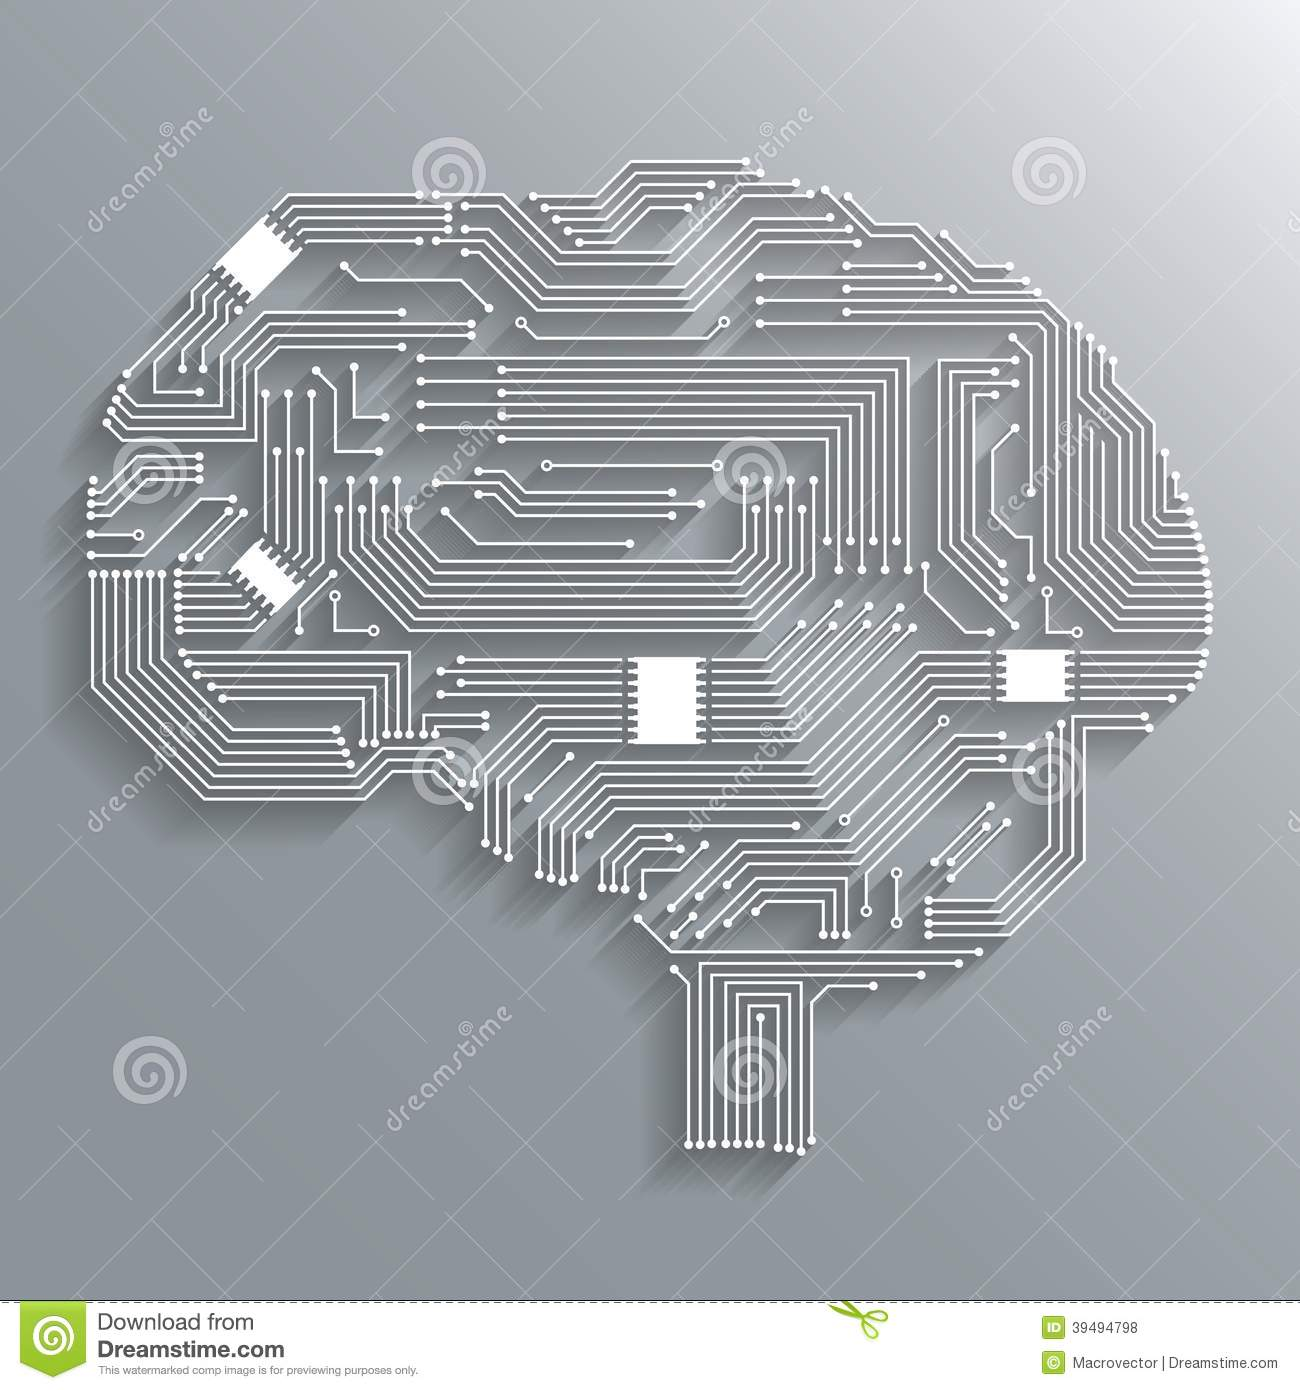 Circuit Brain Reusable : Circuit board brain stock vector illustration of